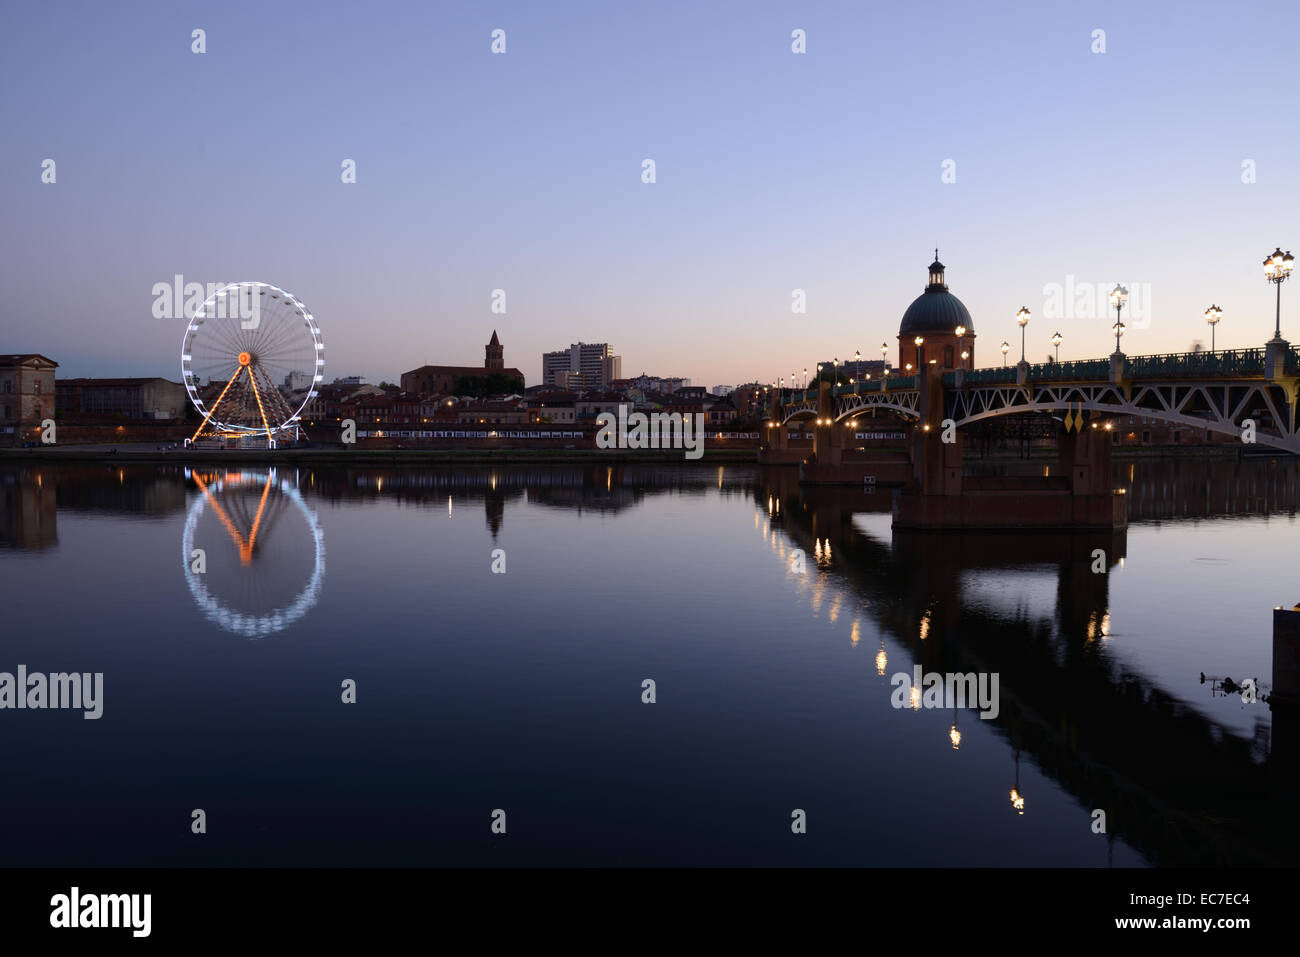 River Garonne & Pont Saint Pierre Bridge & Saint Joseph's Dome at Dusk Night or Evening Toulouse Haute-Garonne France Stock Photo